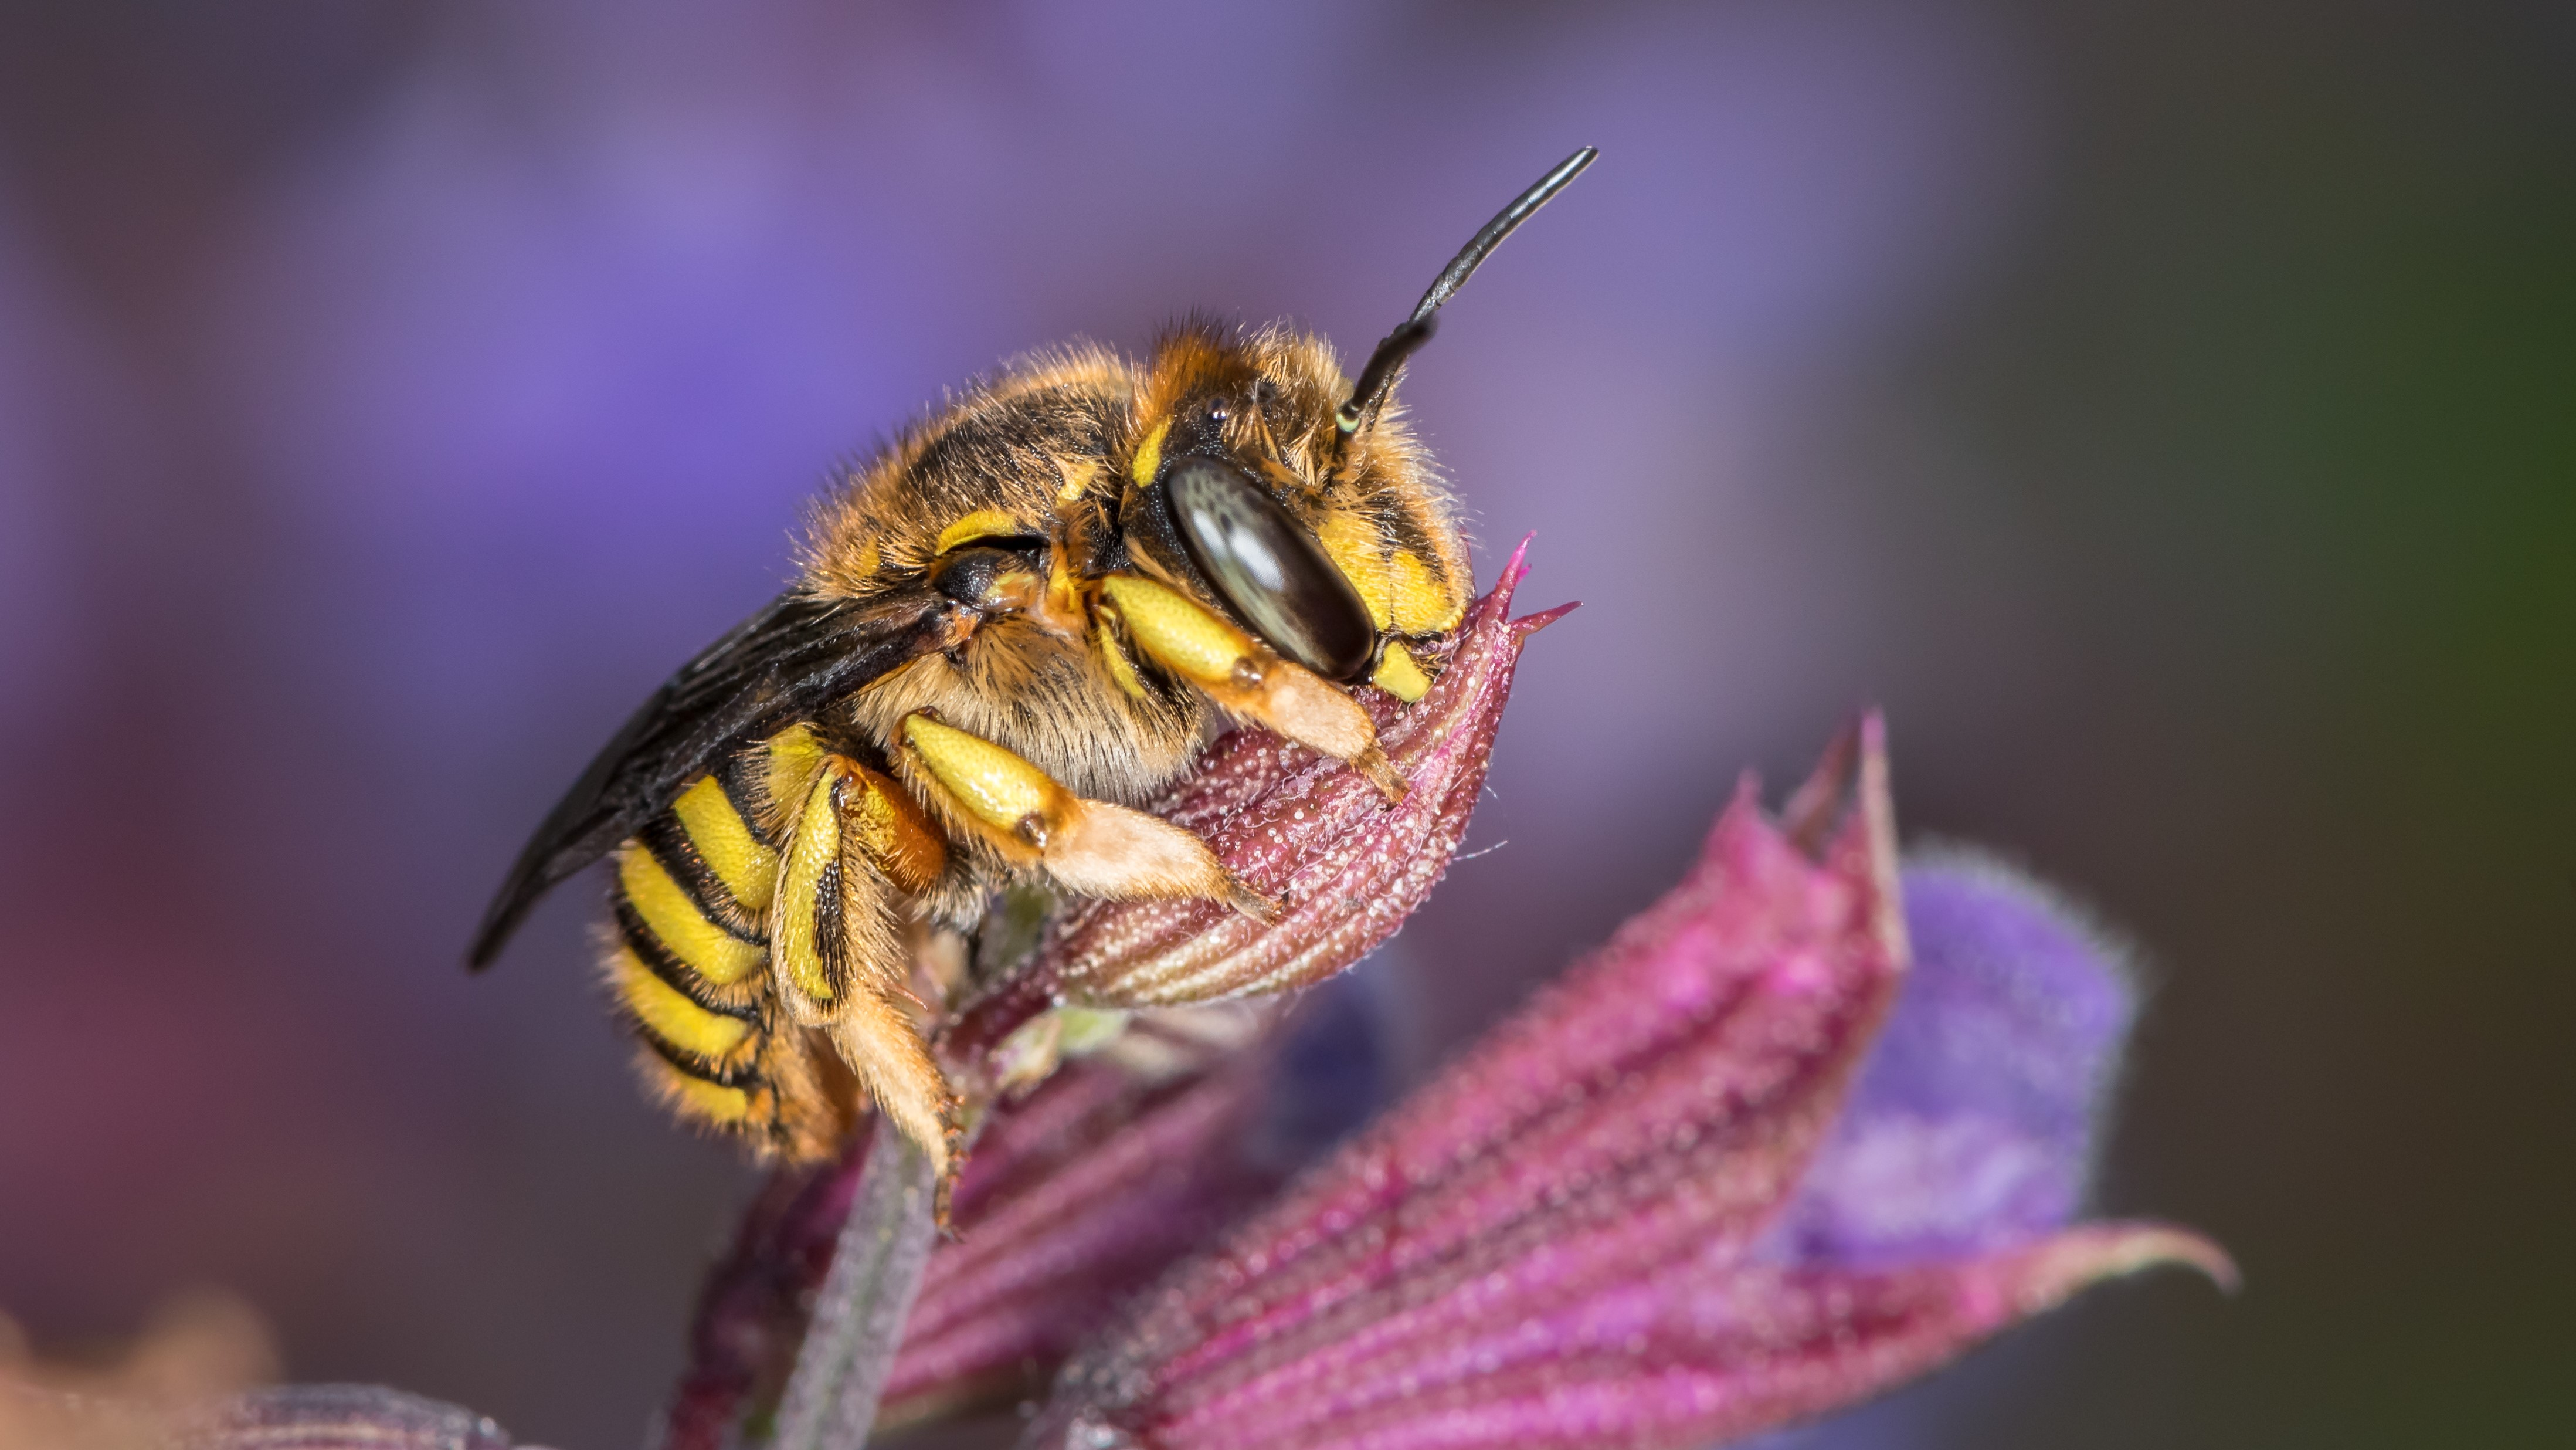 Attract Bees - Attract Mason bees - European wool carder bees